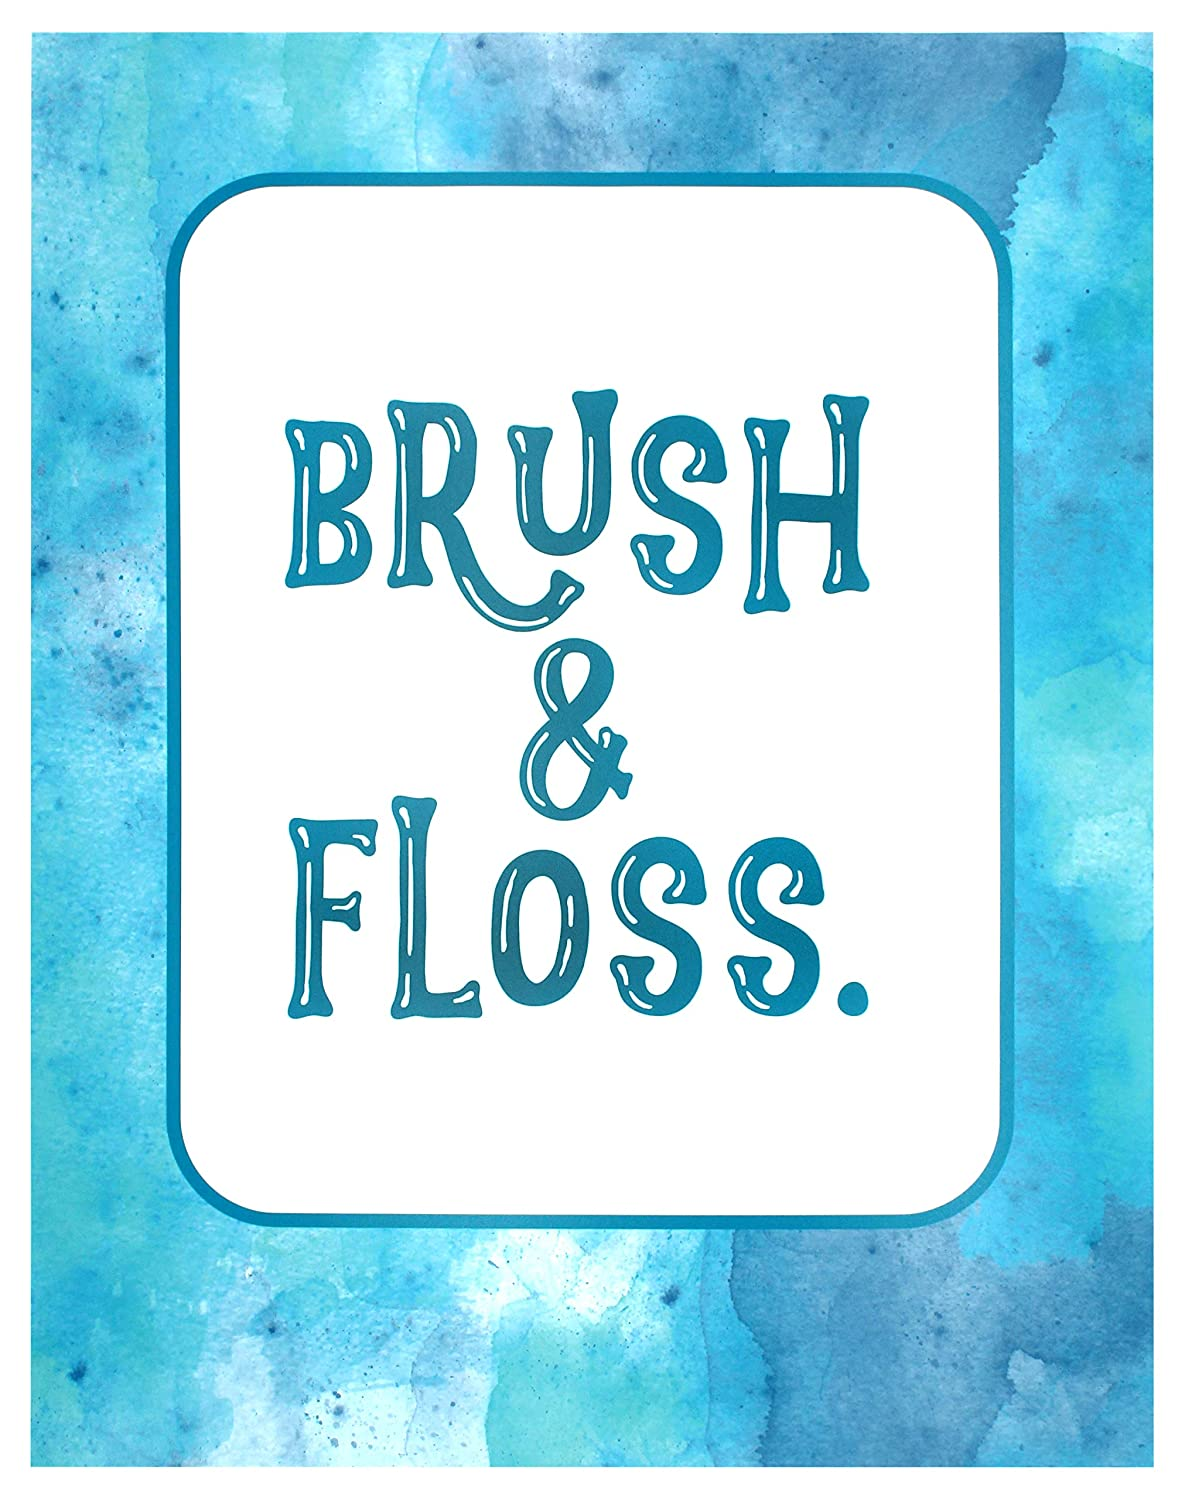 Brush and Floss, 11x14 Unframed Art Print, Wall Decor, Great Gift for Dentist or Dental Student, Fun Office or Kid Bathroom Decor